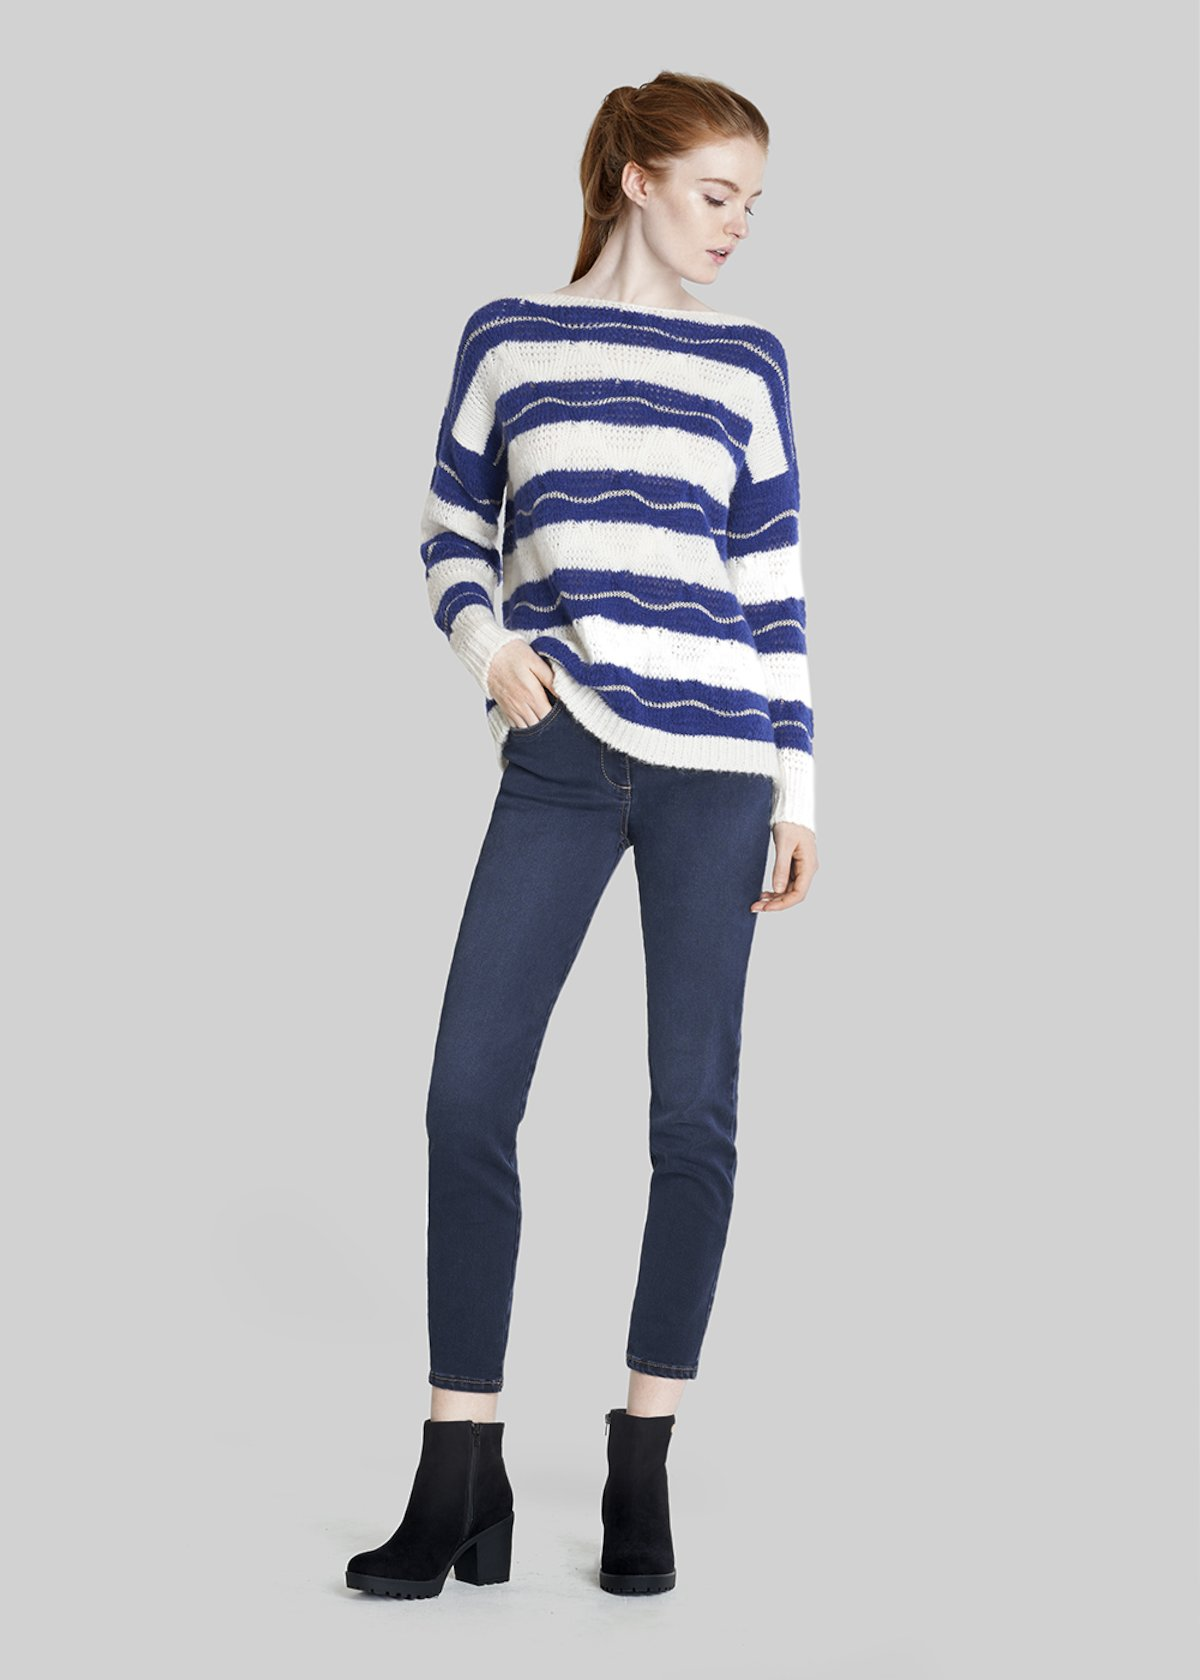 Marilyn sweater with stripes and boat neckline - Lapis / White